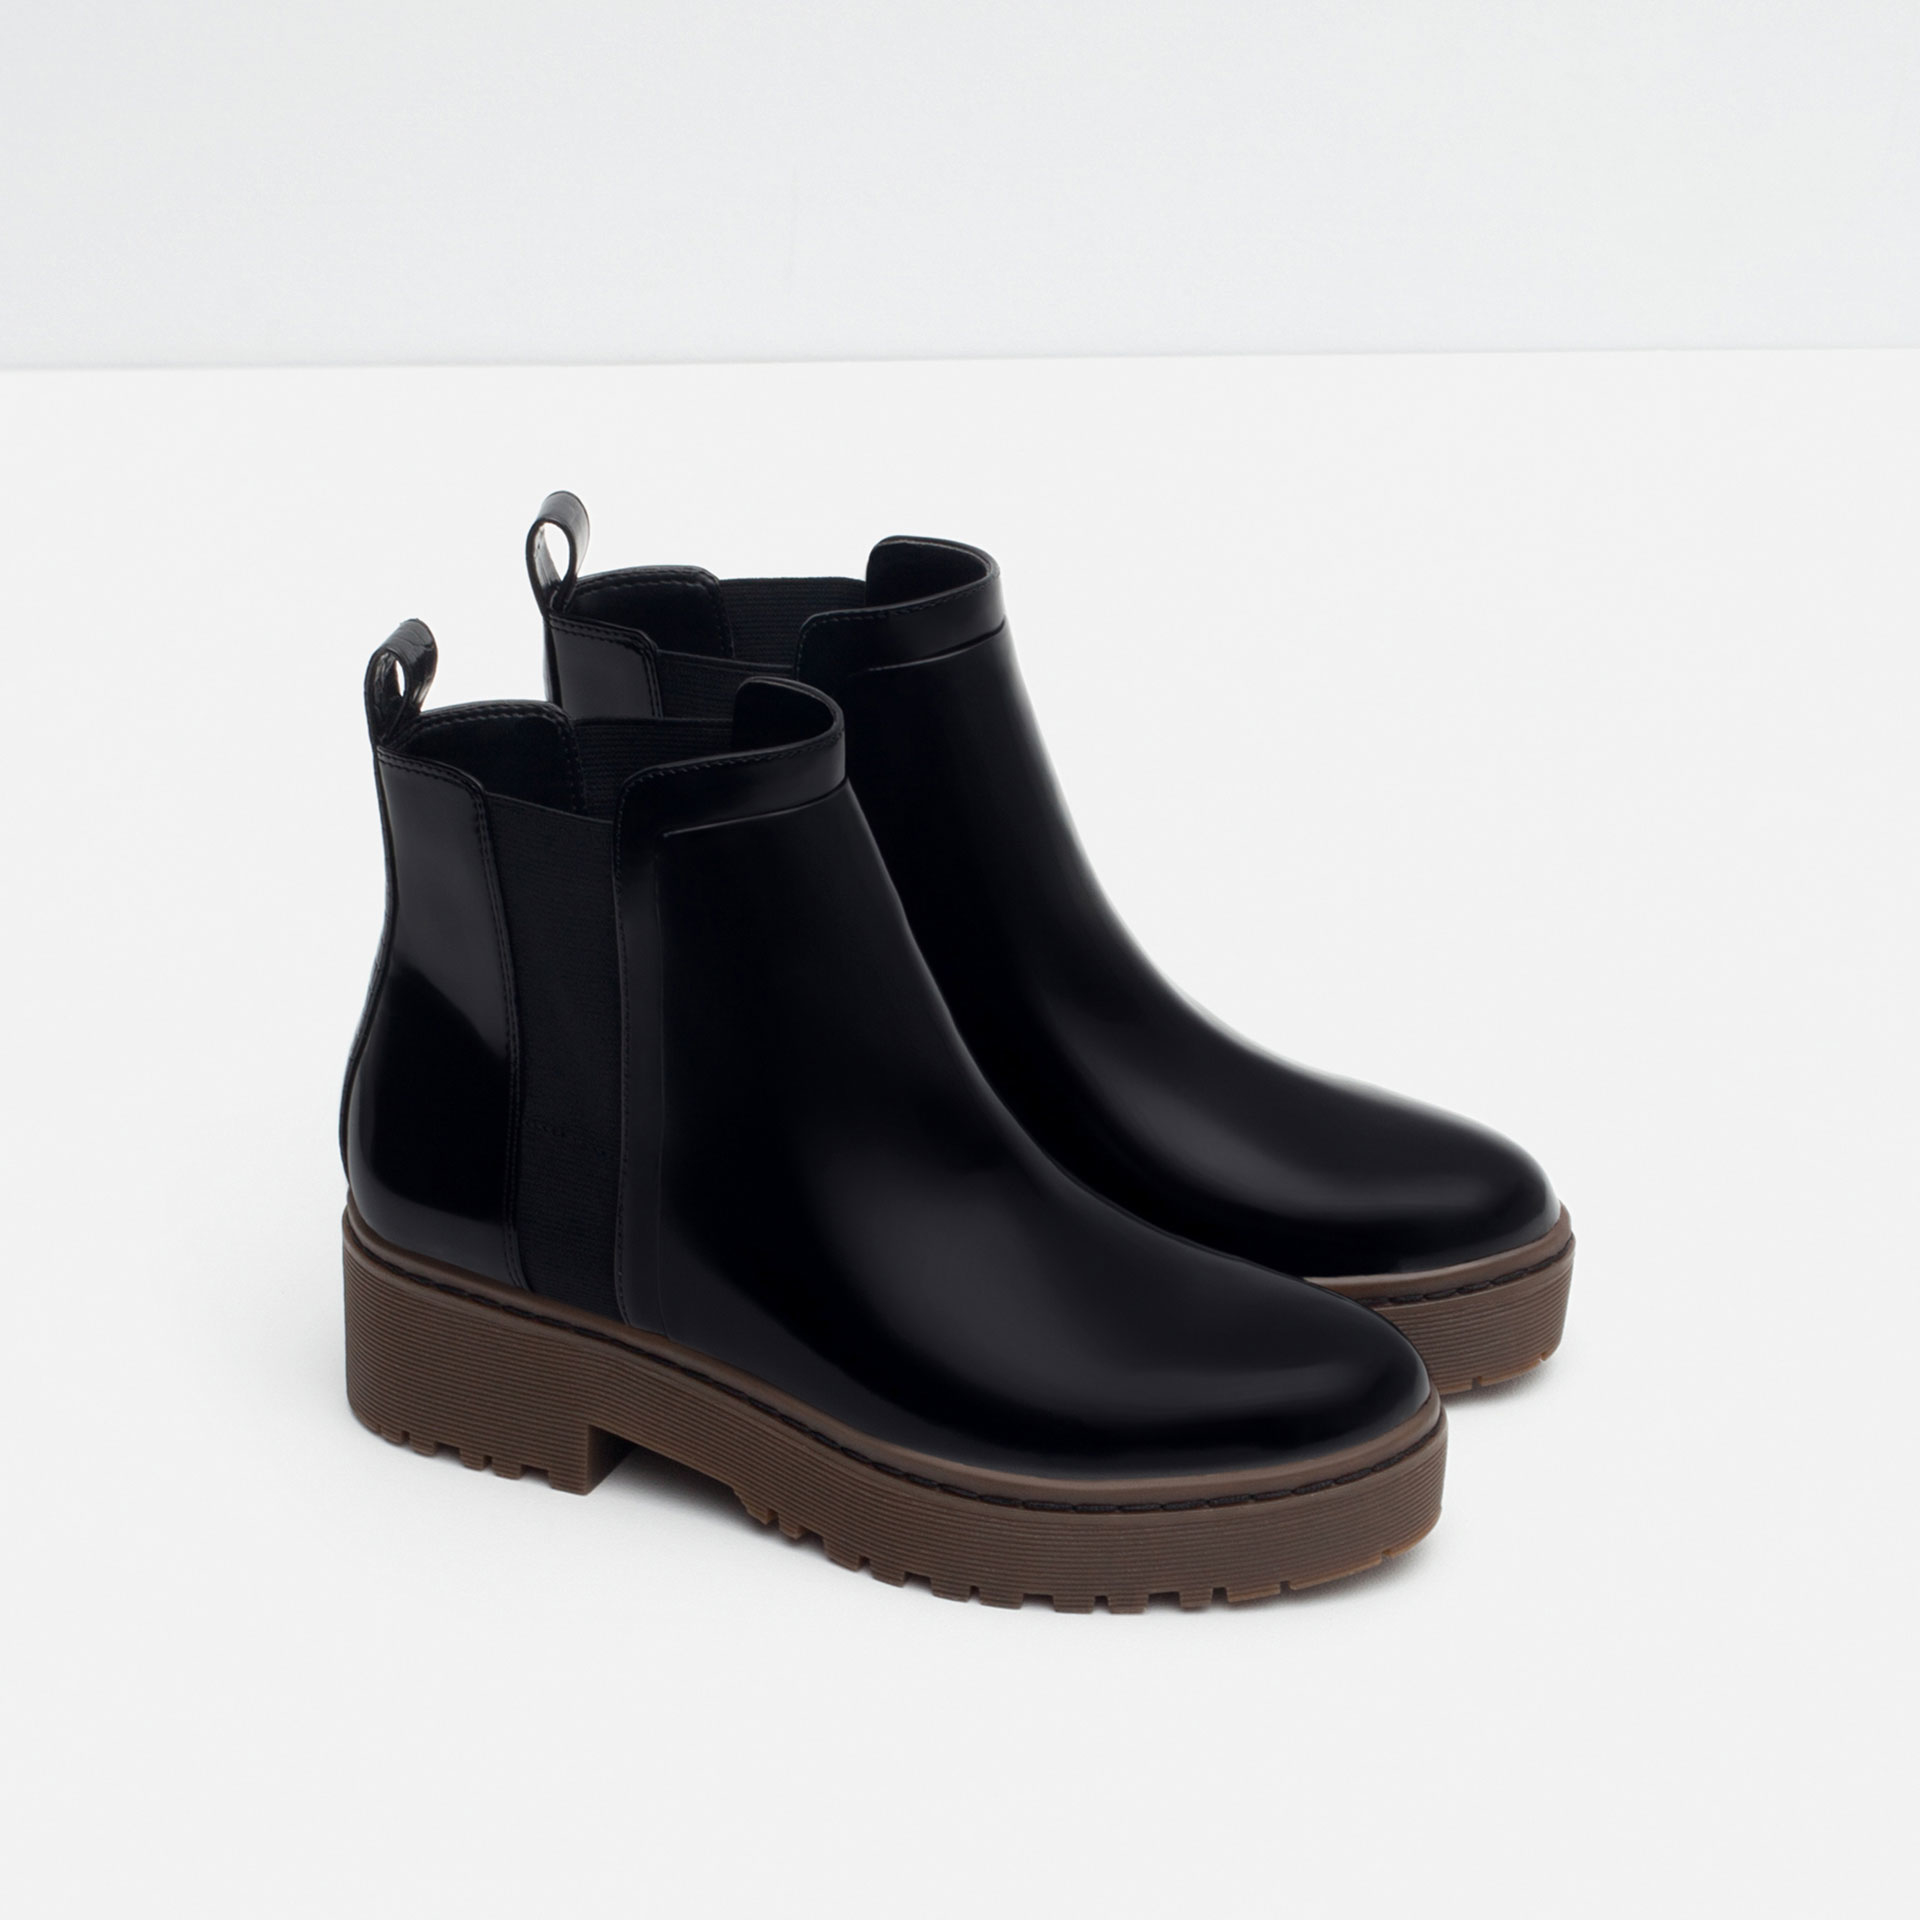 Zara Flat Track Ankle Boots in Black | Lyst